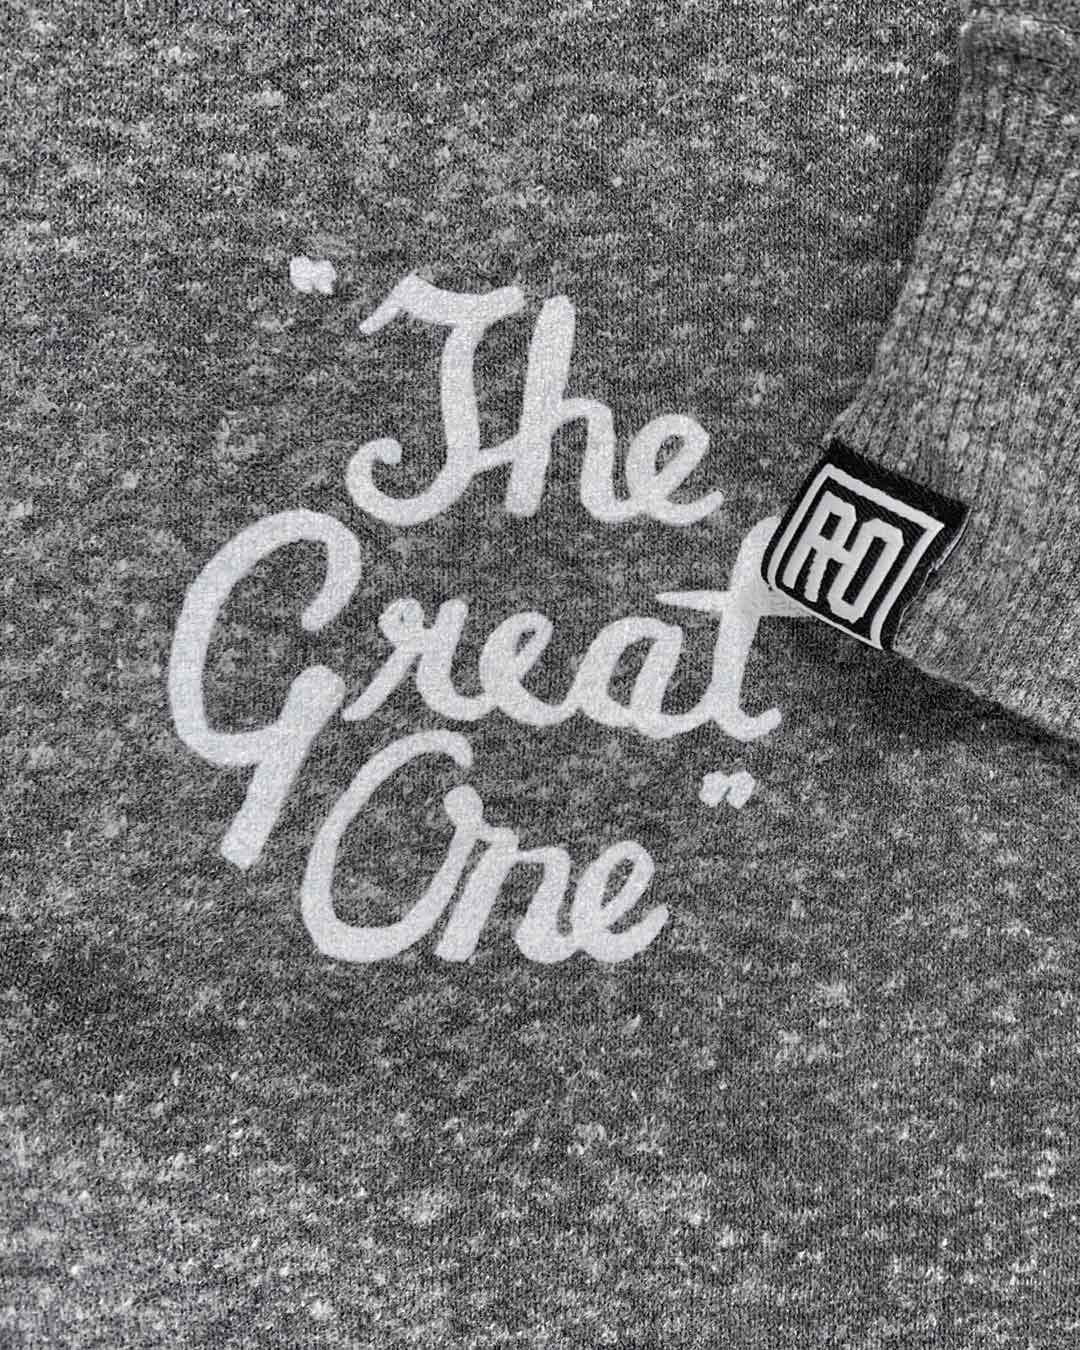 Roberto Clemente The Great One Heritage Sweatshirt - Roots of Inc dba Roots of Fight